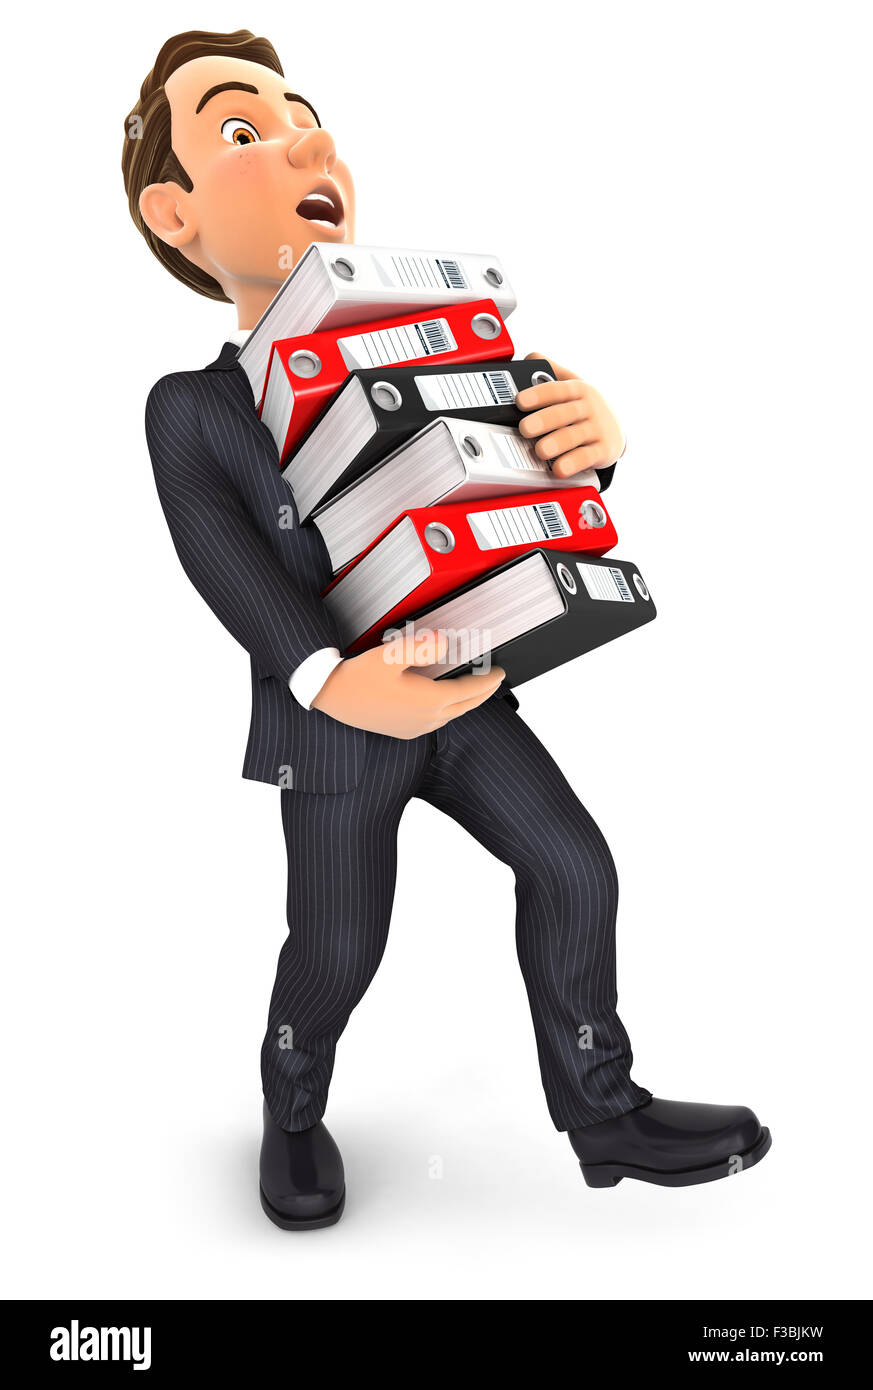 3d businessman overworked holding stack of binders, isolated white background Stock Photo